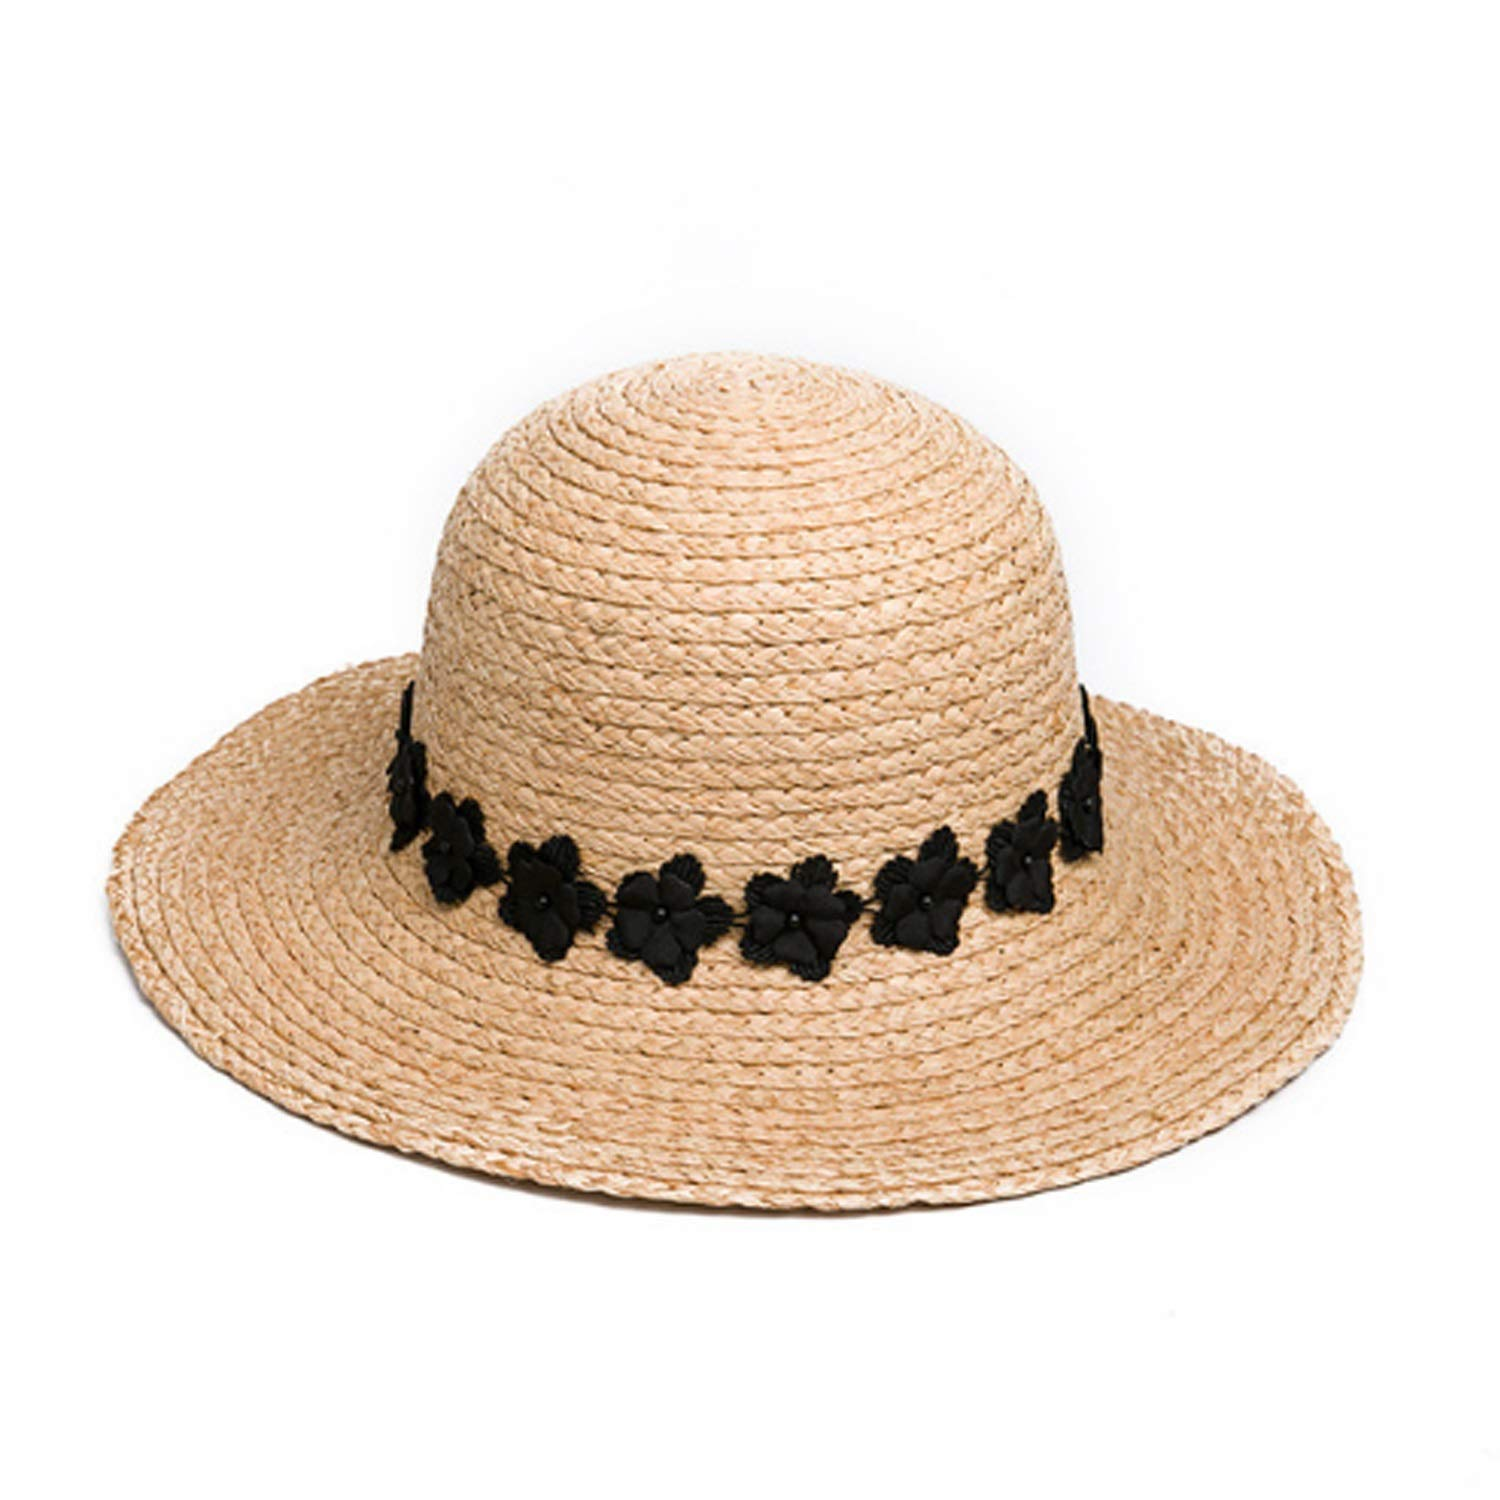 Hat SpringSummer New Product Hat Fashion Shade Sunscreen Lafite Straw Hat Woman (color   Natural, Size   M)